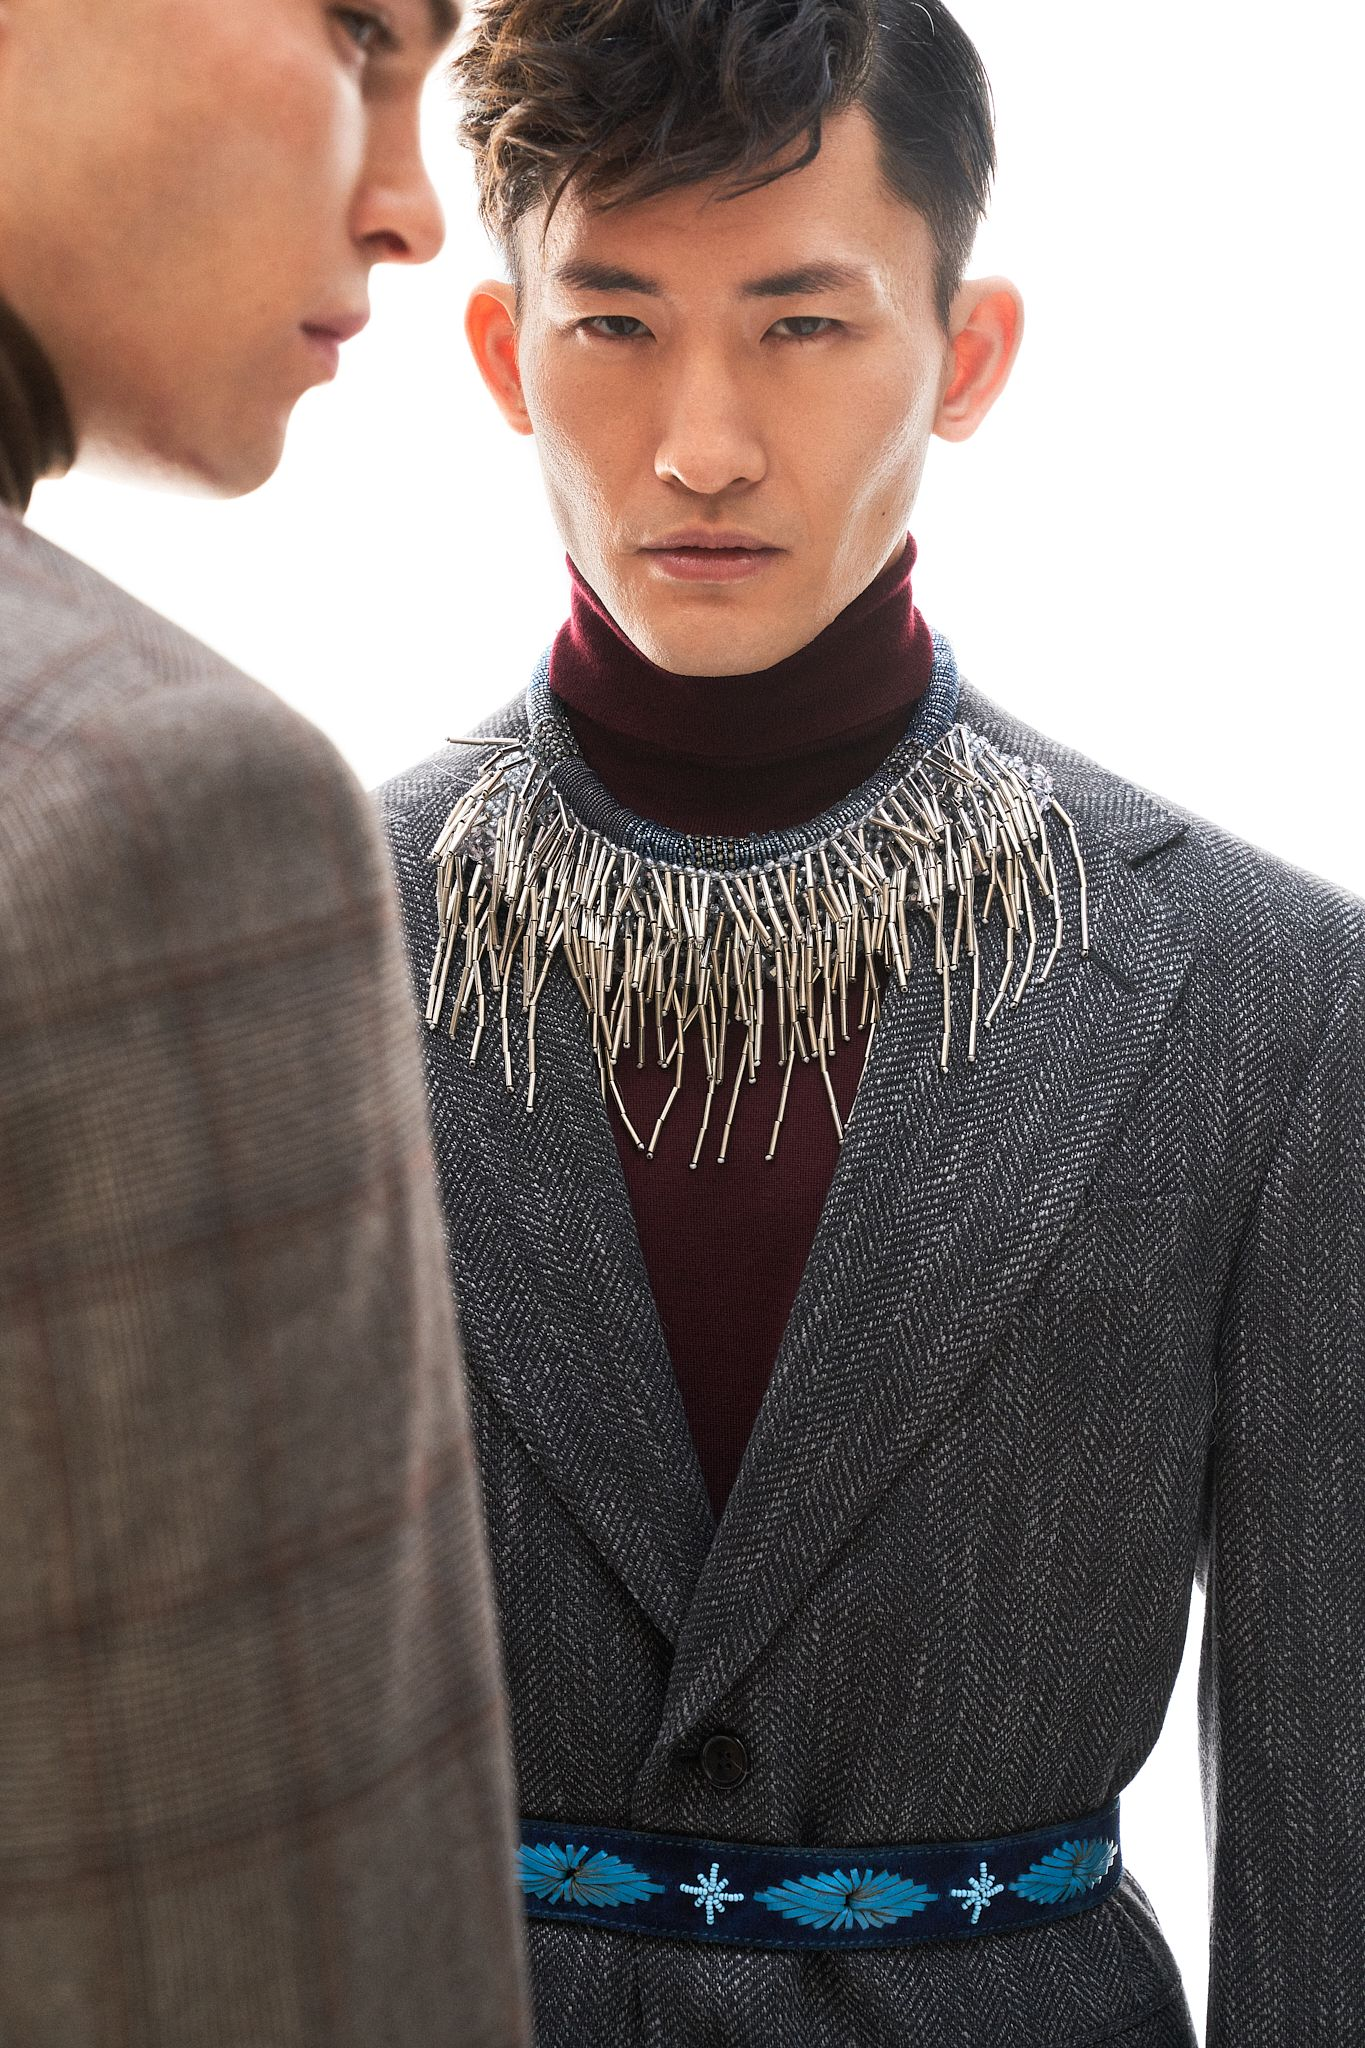 Editorial on Man in Town  - Pic. 5